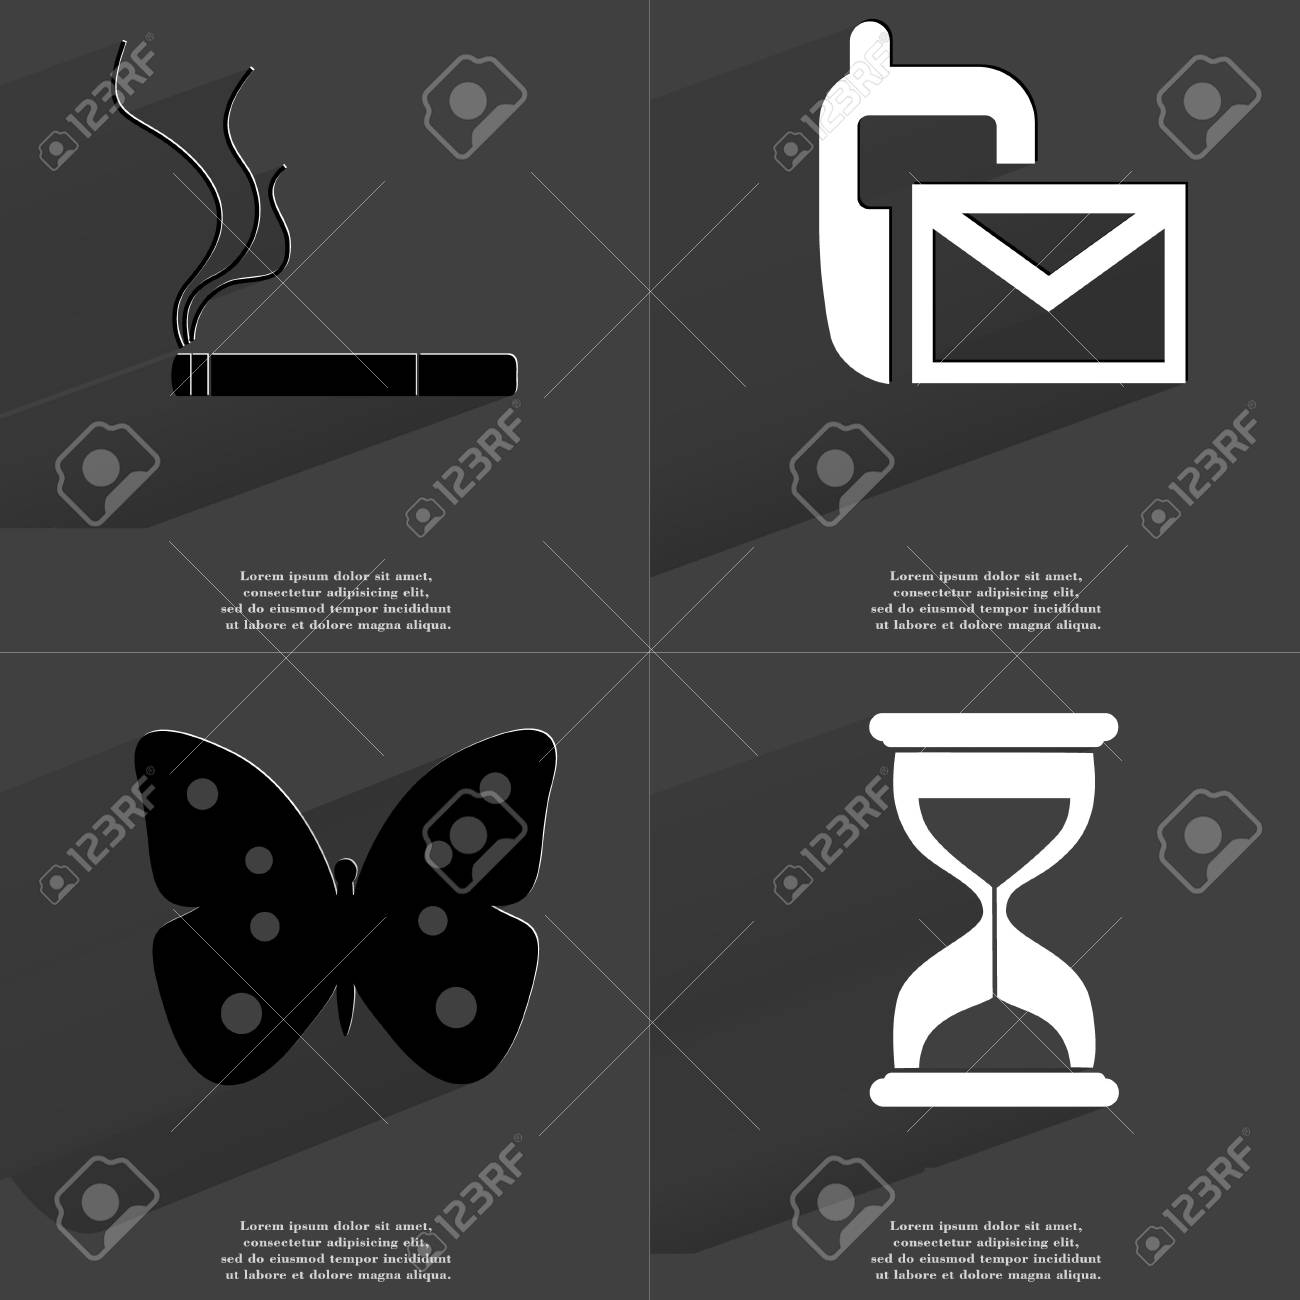 Cigarette sms icon butterfly hourglass symbols with long cigarette sms icon butterfly hourglass symbols with long shadow flat design biocorpaavc Images